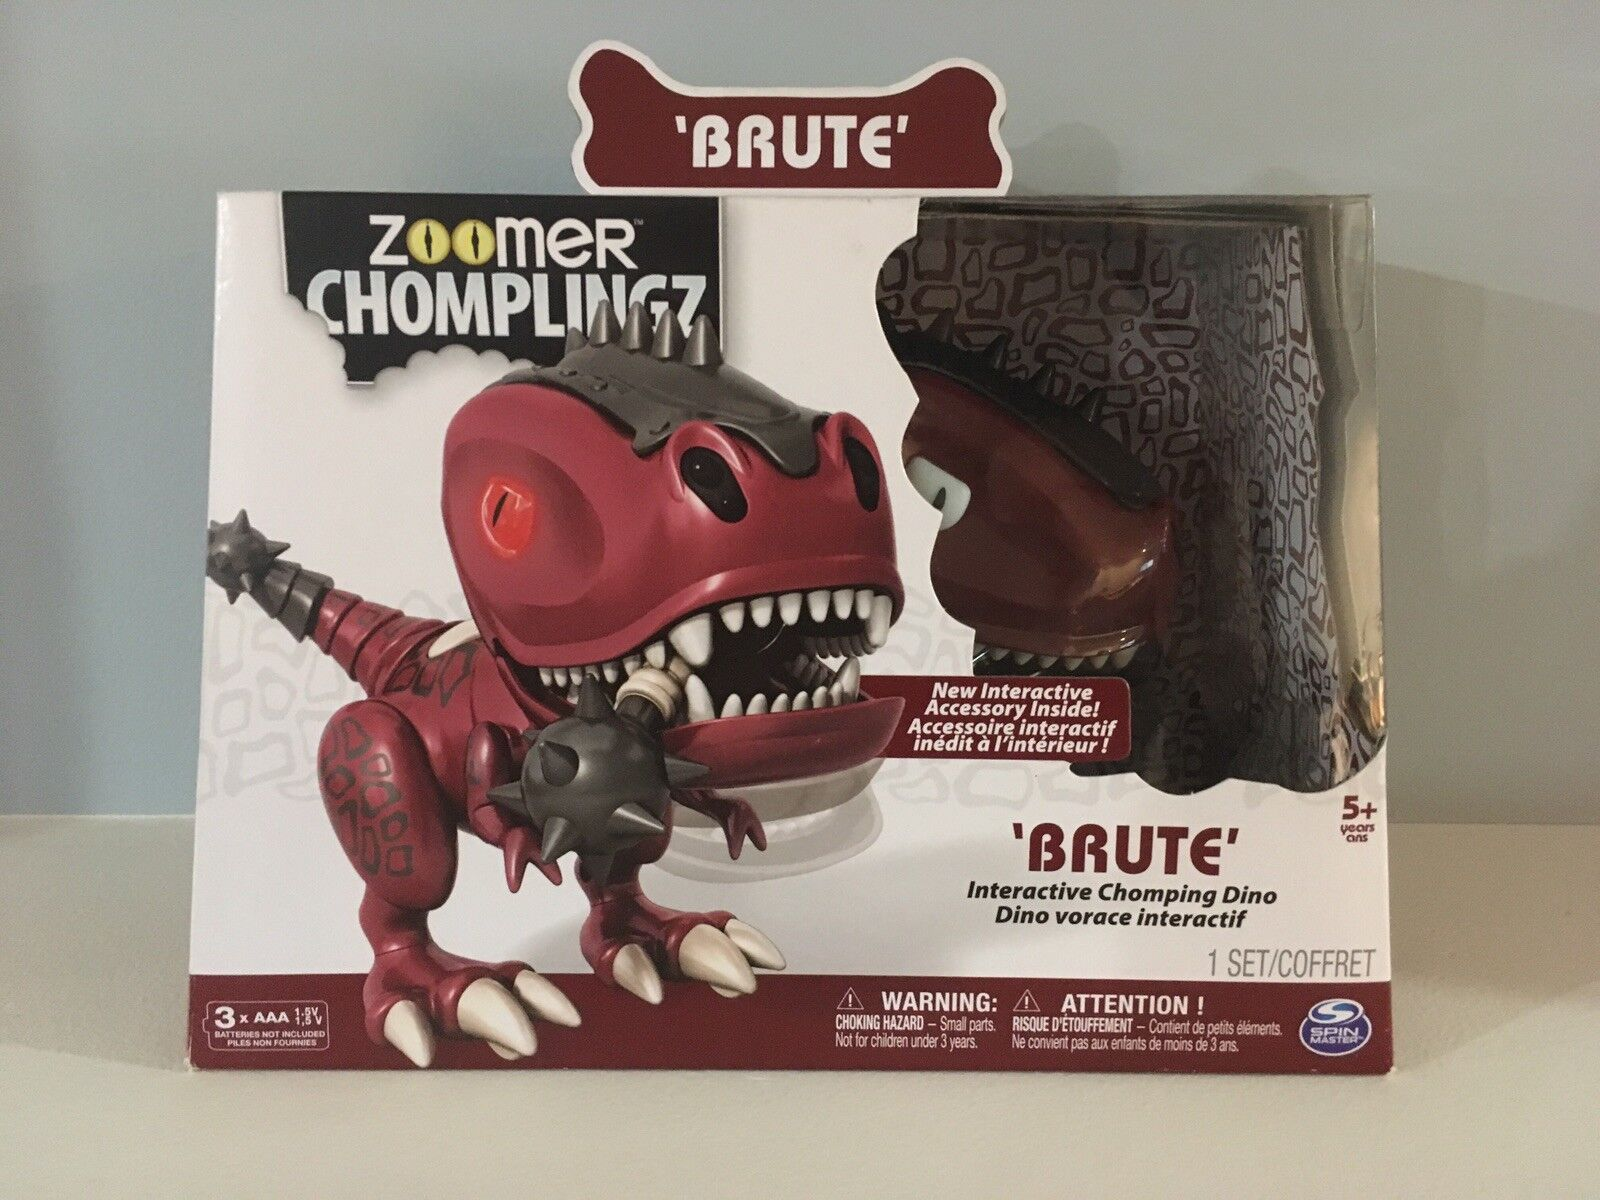 Zoomer Chomplingz Brute Red Dinosaur - Interactive Chomping Dino - Exclusive